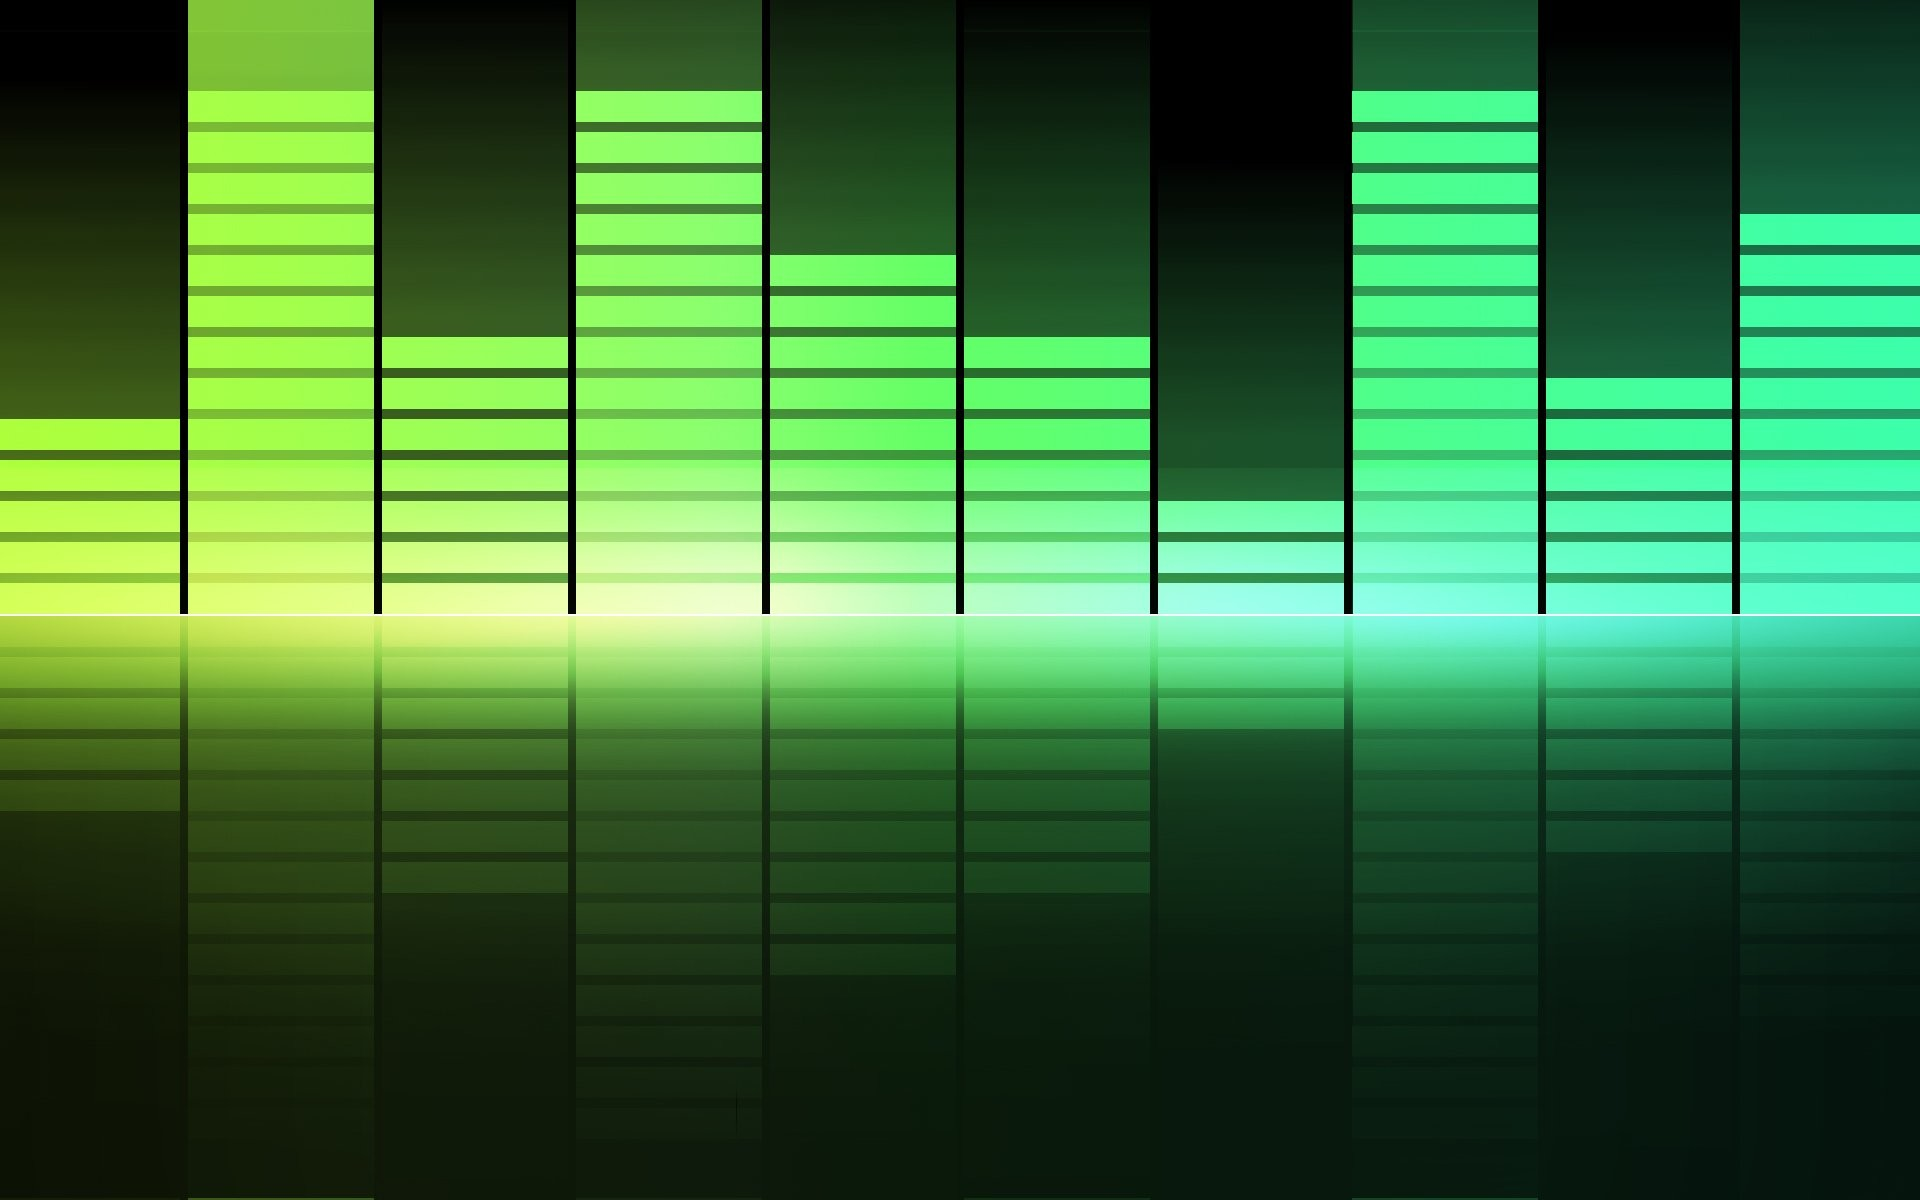 1920x1200 Equalizer 818175. SHARE. TAGS: Moving Animated Backgrounds Mac Love